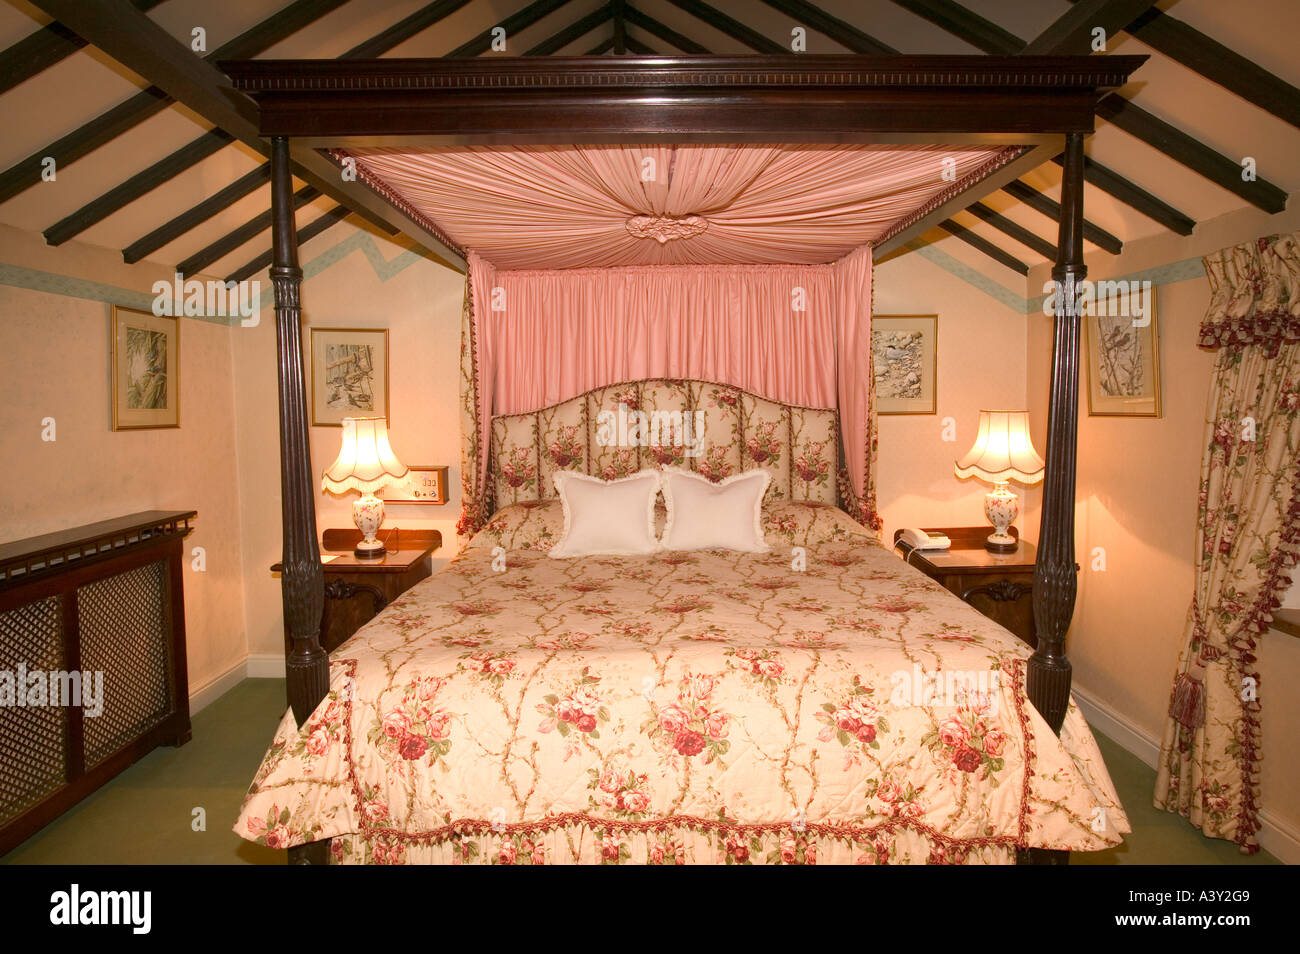 a four poster bed in the Wordsworth Hotel, Grasmere, Lake district, UK - Stock Image